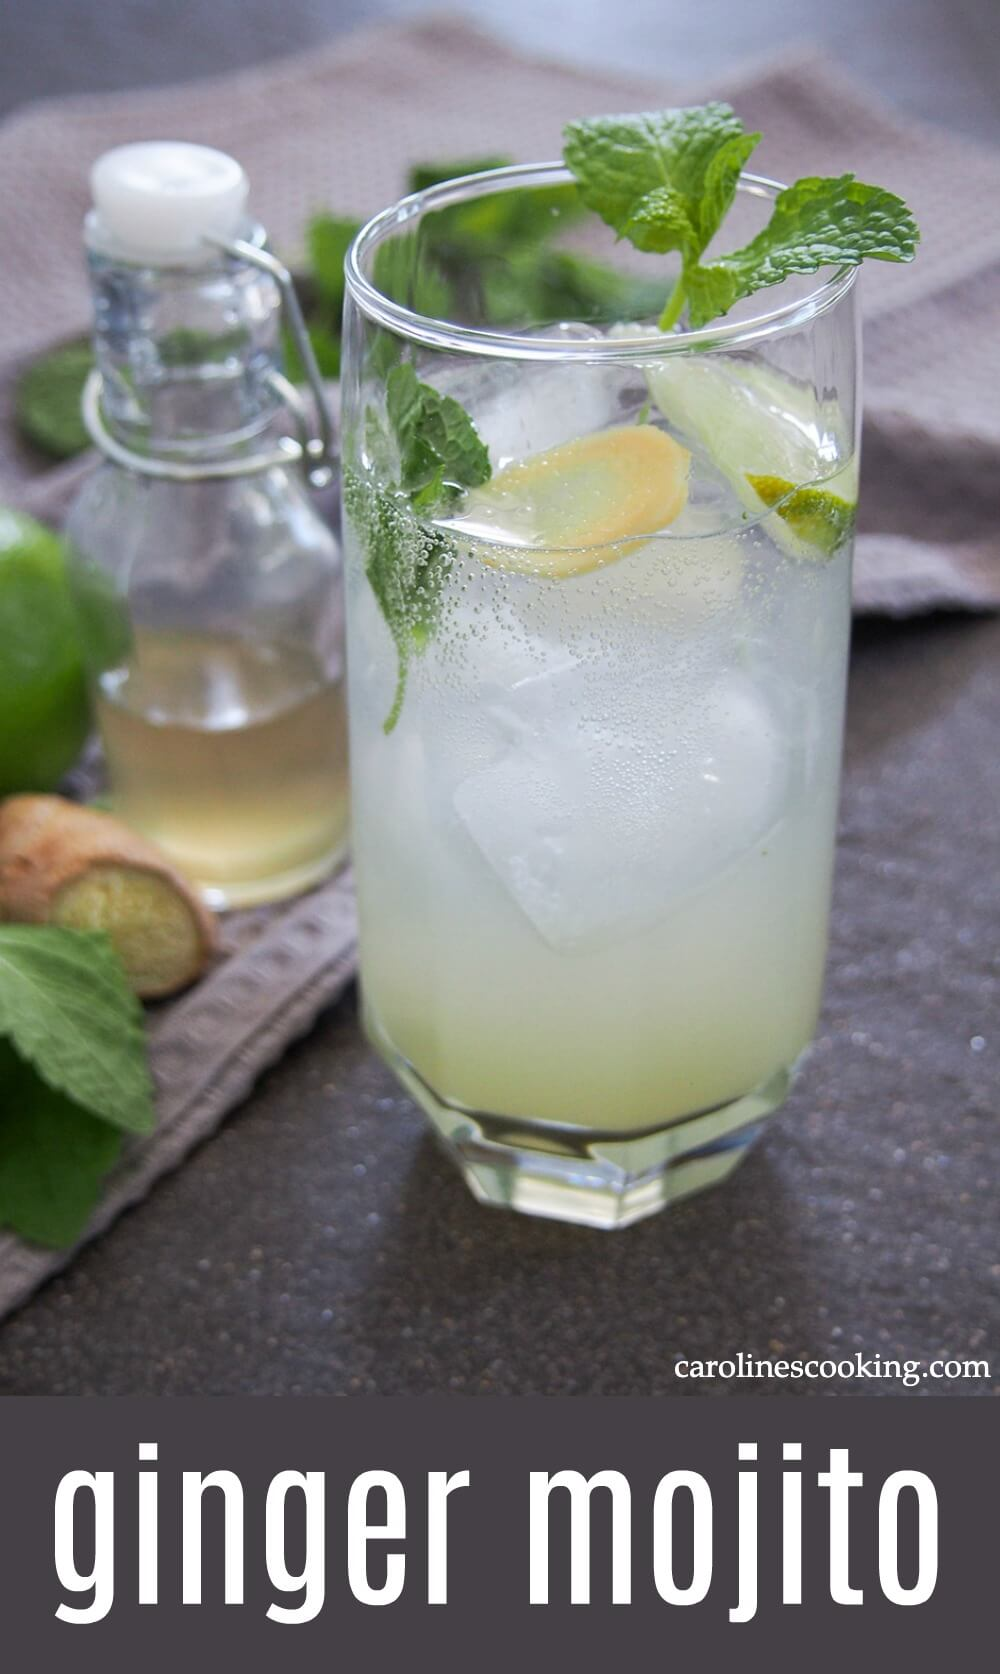 This ginger mojito is easy to make, with a great ginger kick from the homemade ginger syrup. Fresh, bright and perfect for any occasion.